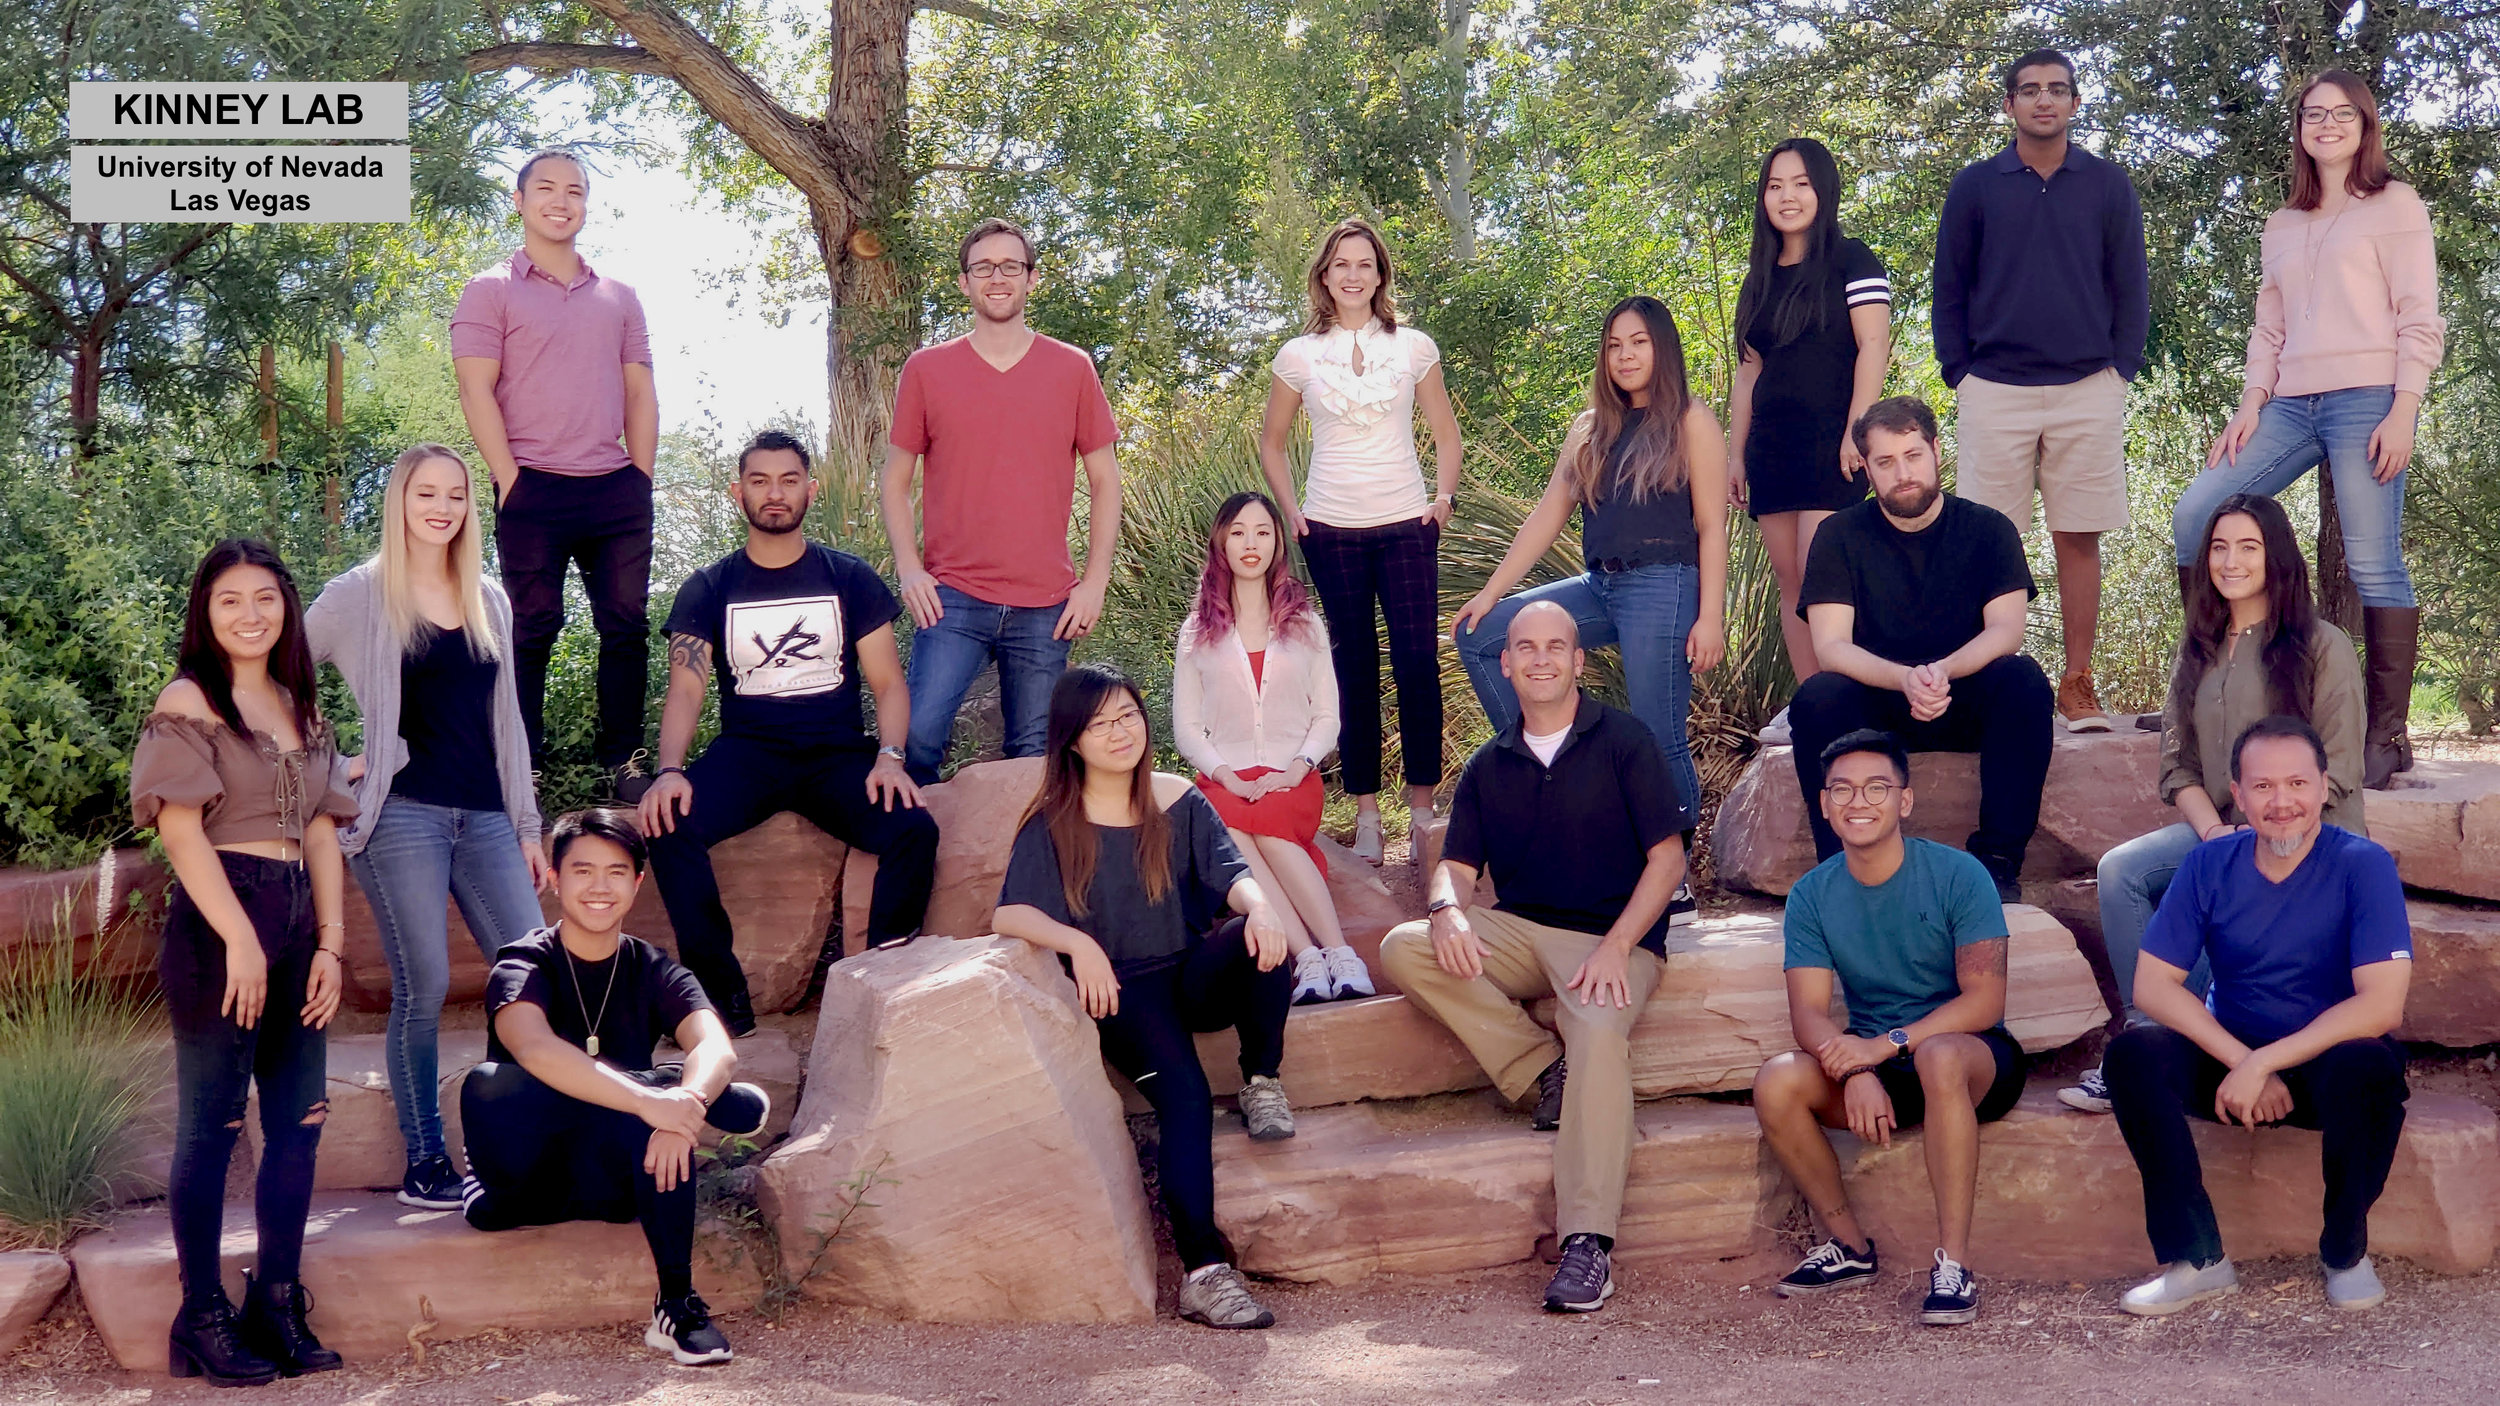 Fall 2018 Kinney Lab Photo.jpg